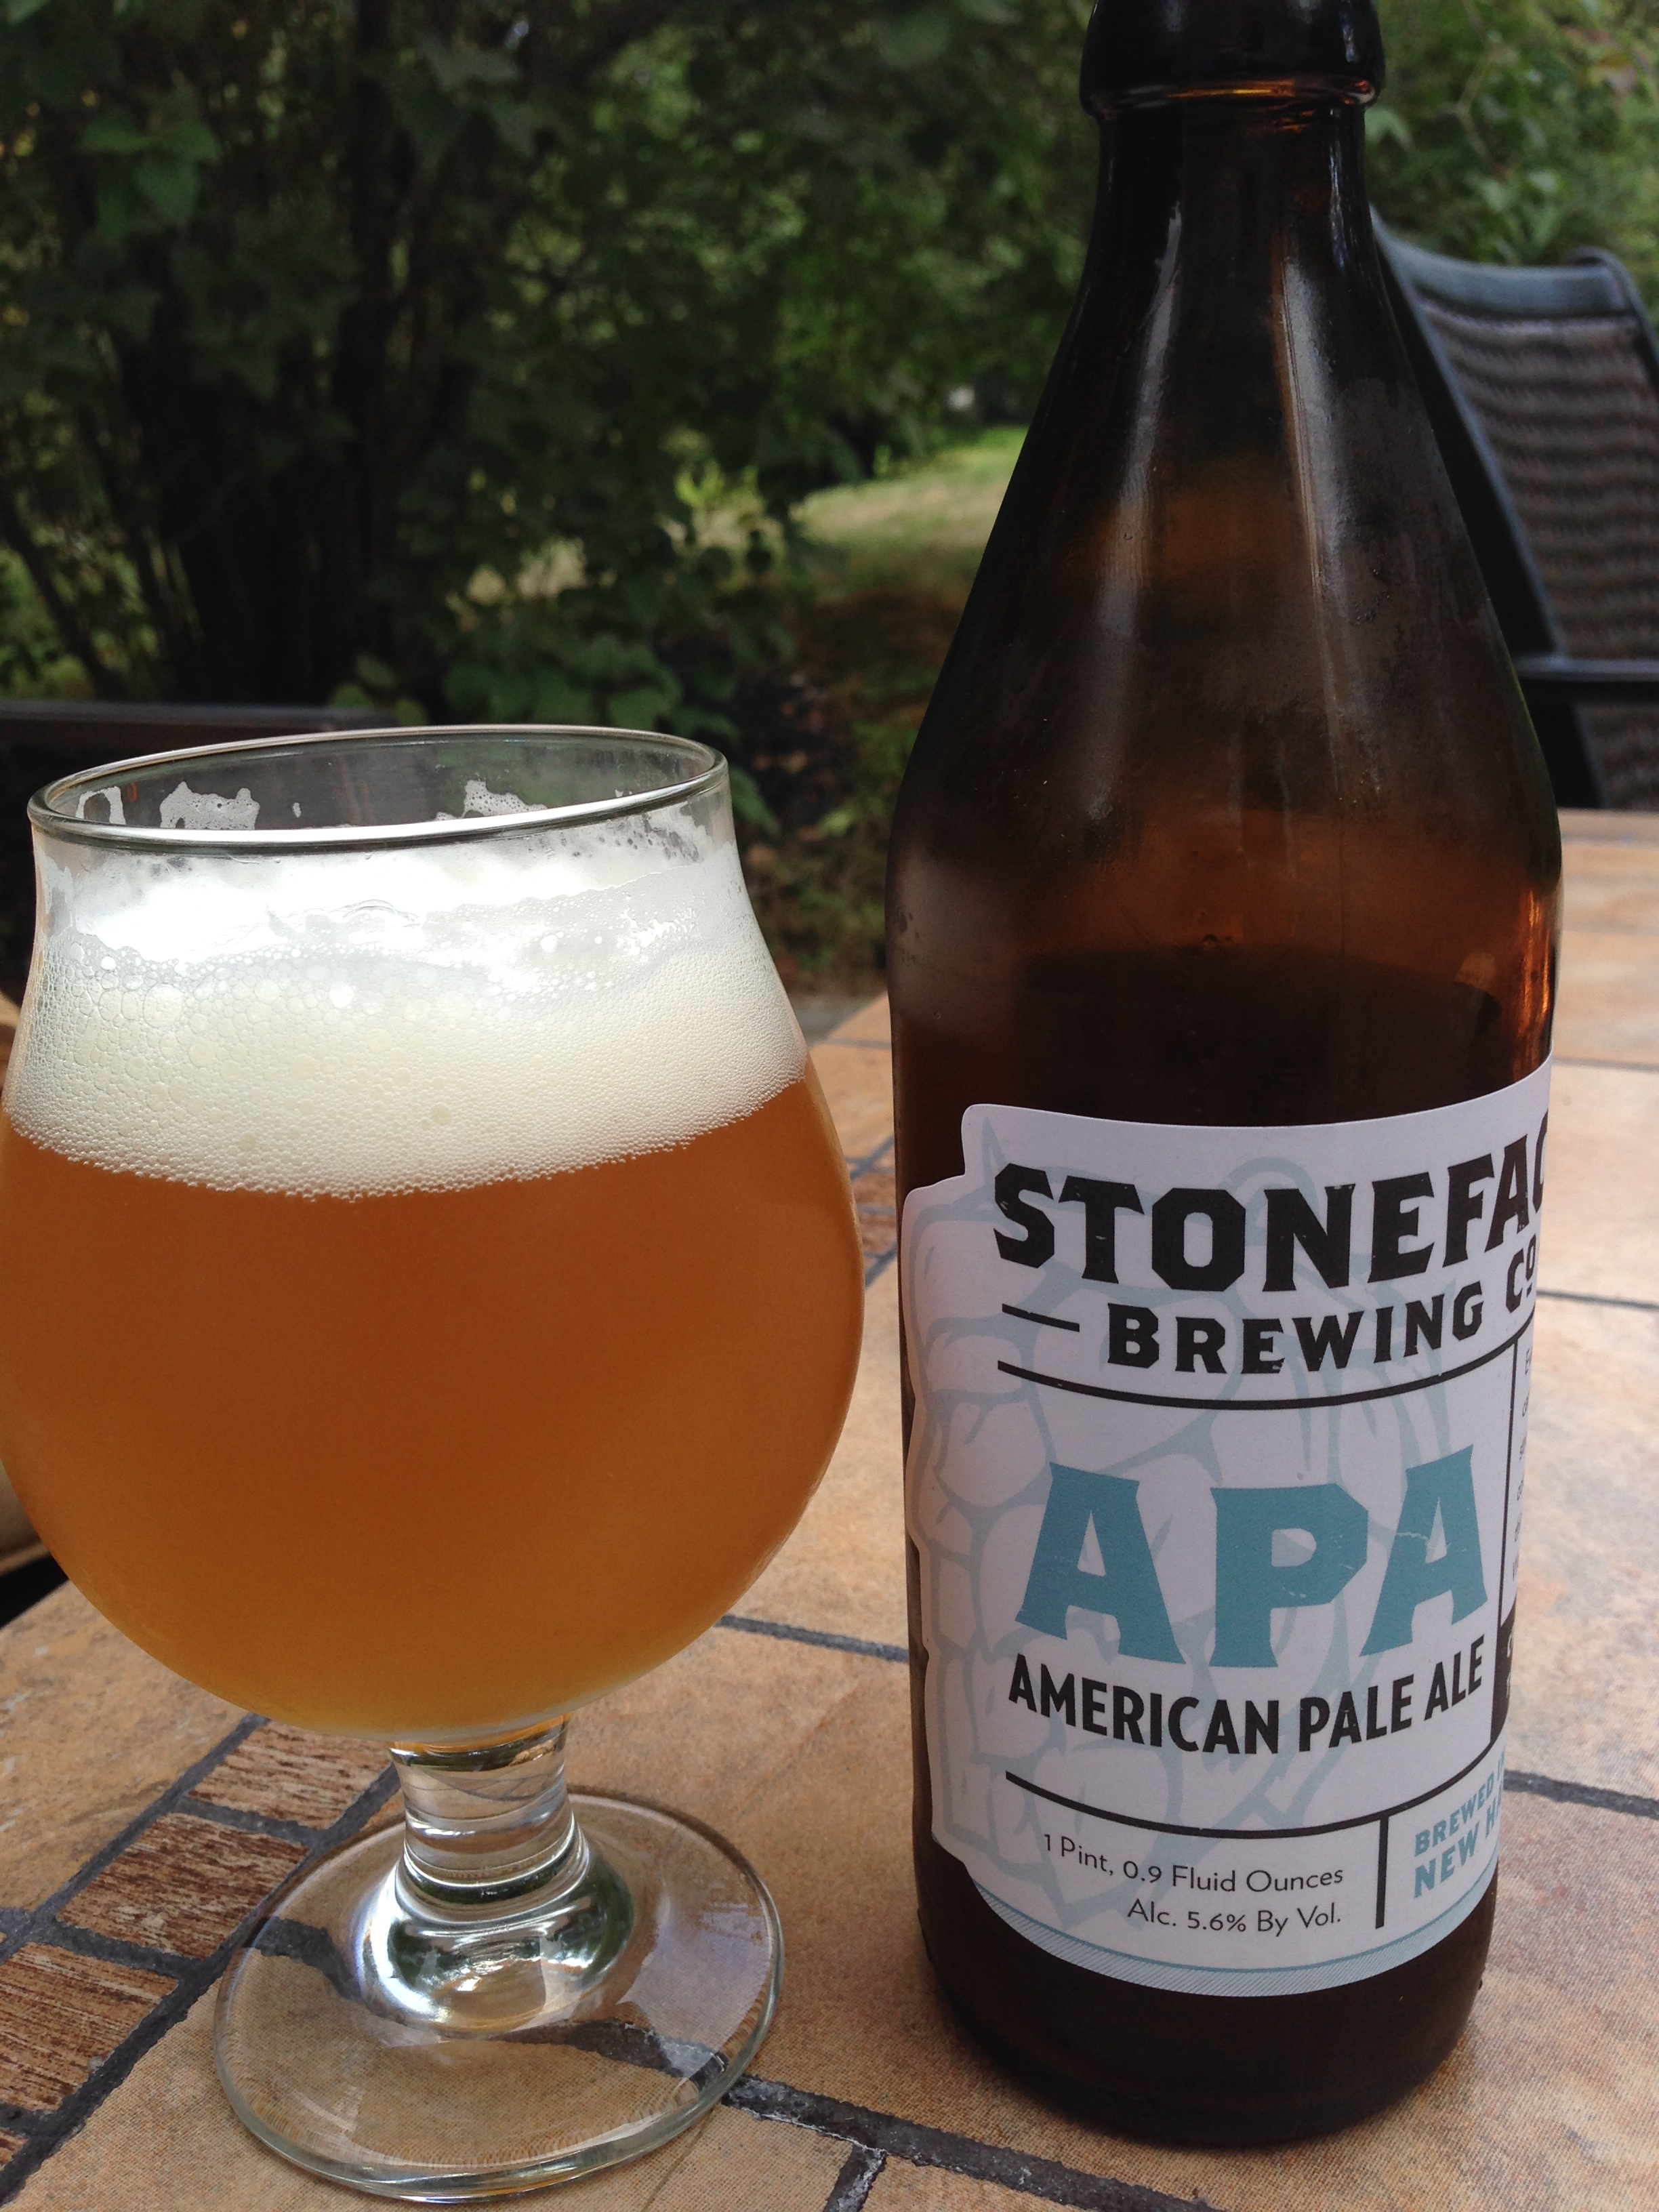 Stoneface Brewing Company: APA: America Pale Ale